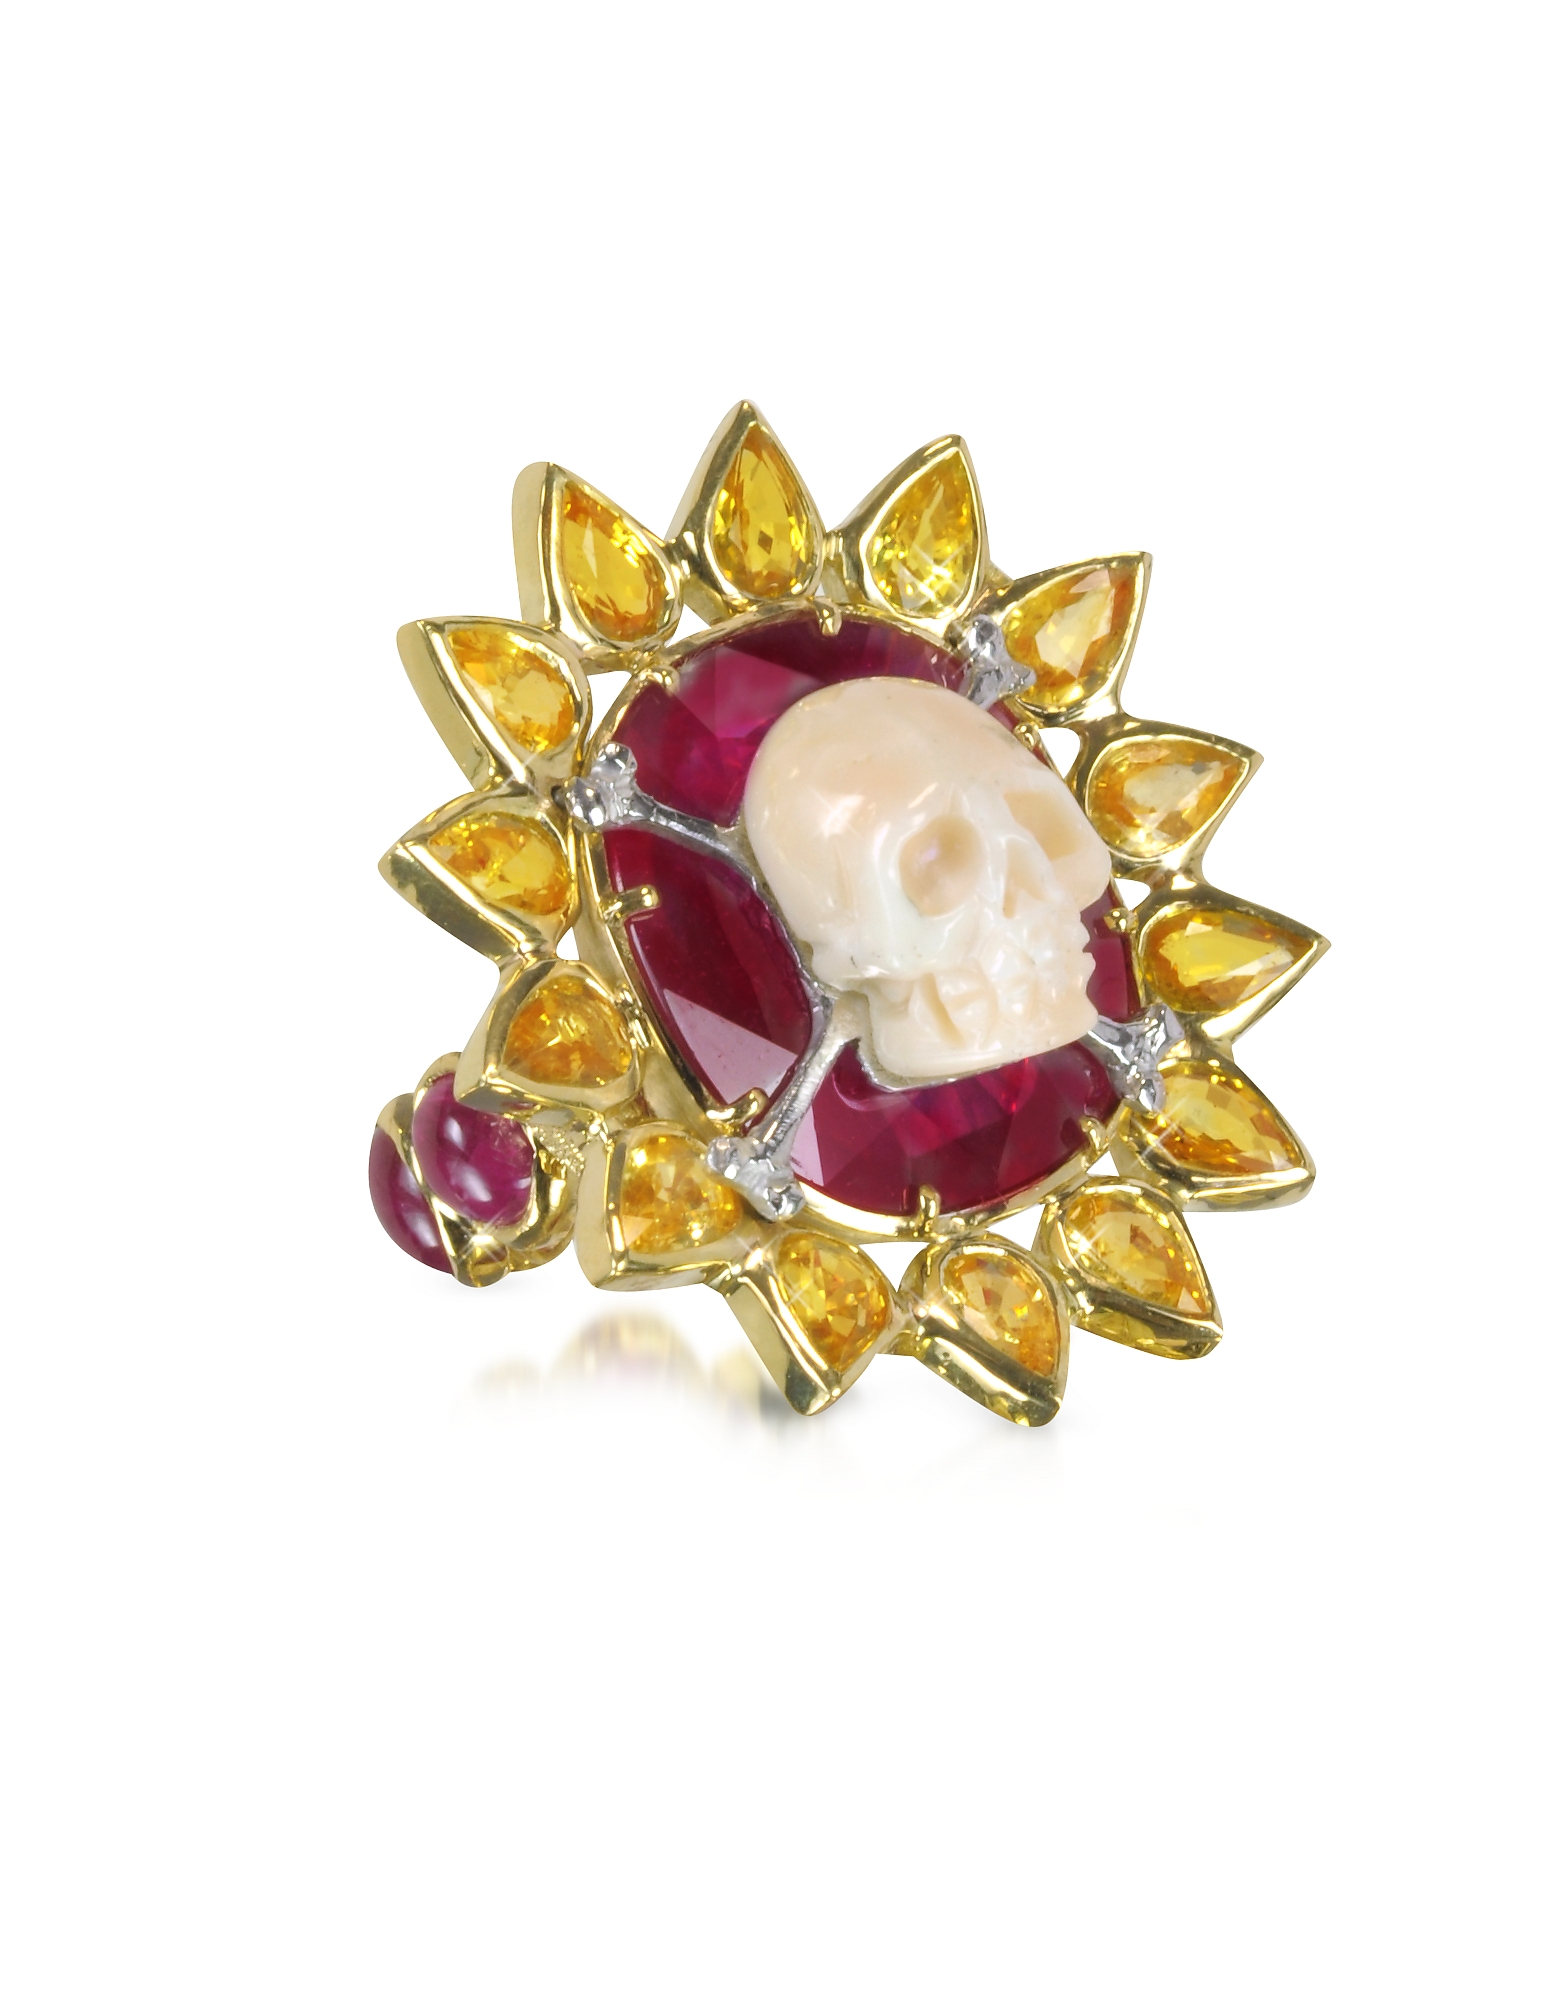 Bernard Delettrez Rings, Gold, Ruby and Yellow Sapphires Skull Bone Ring